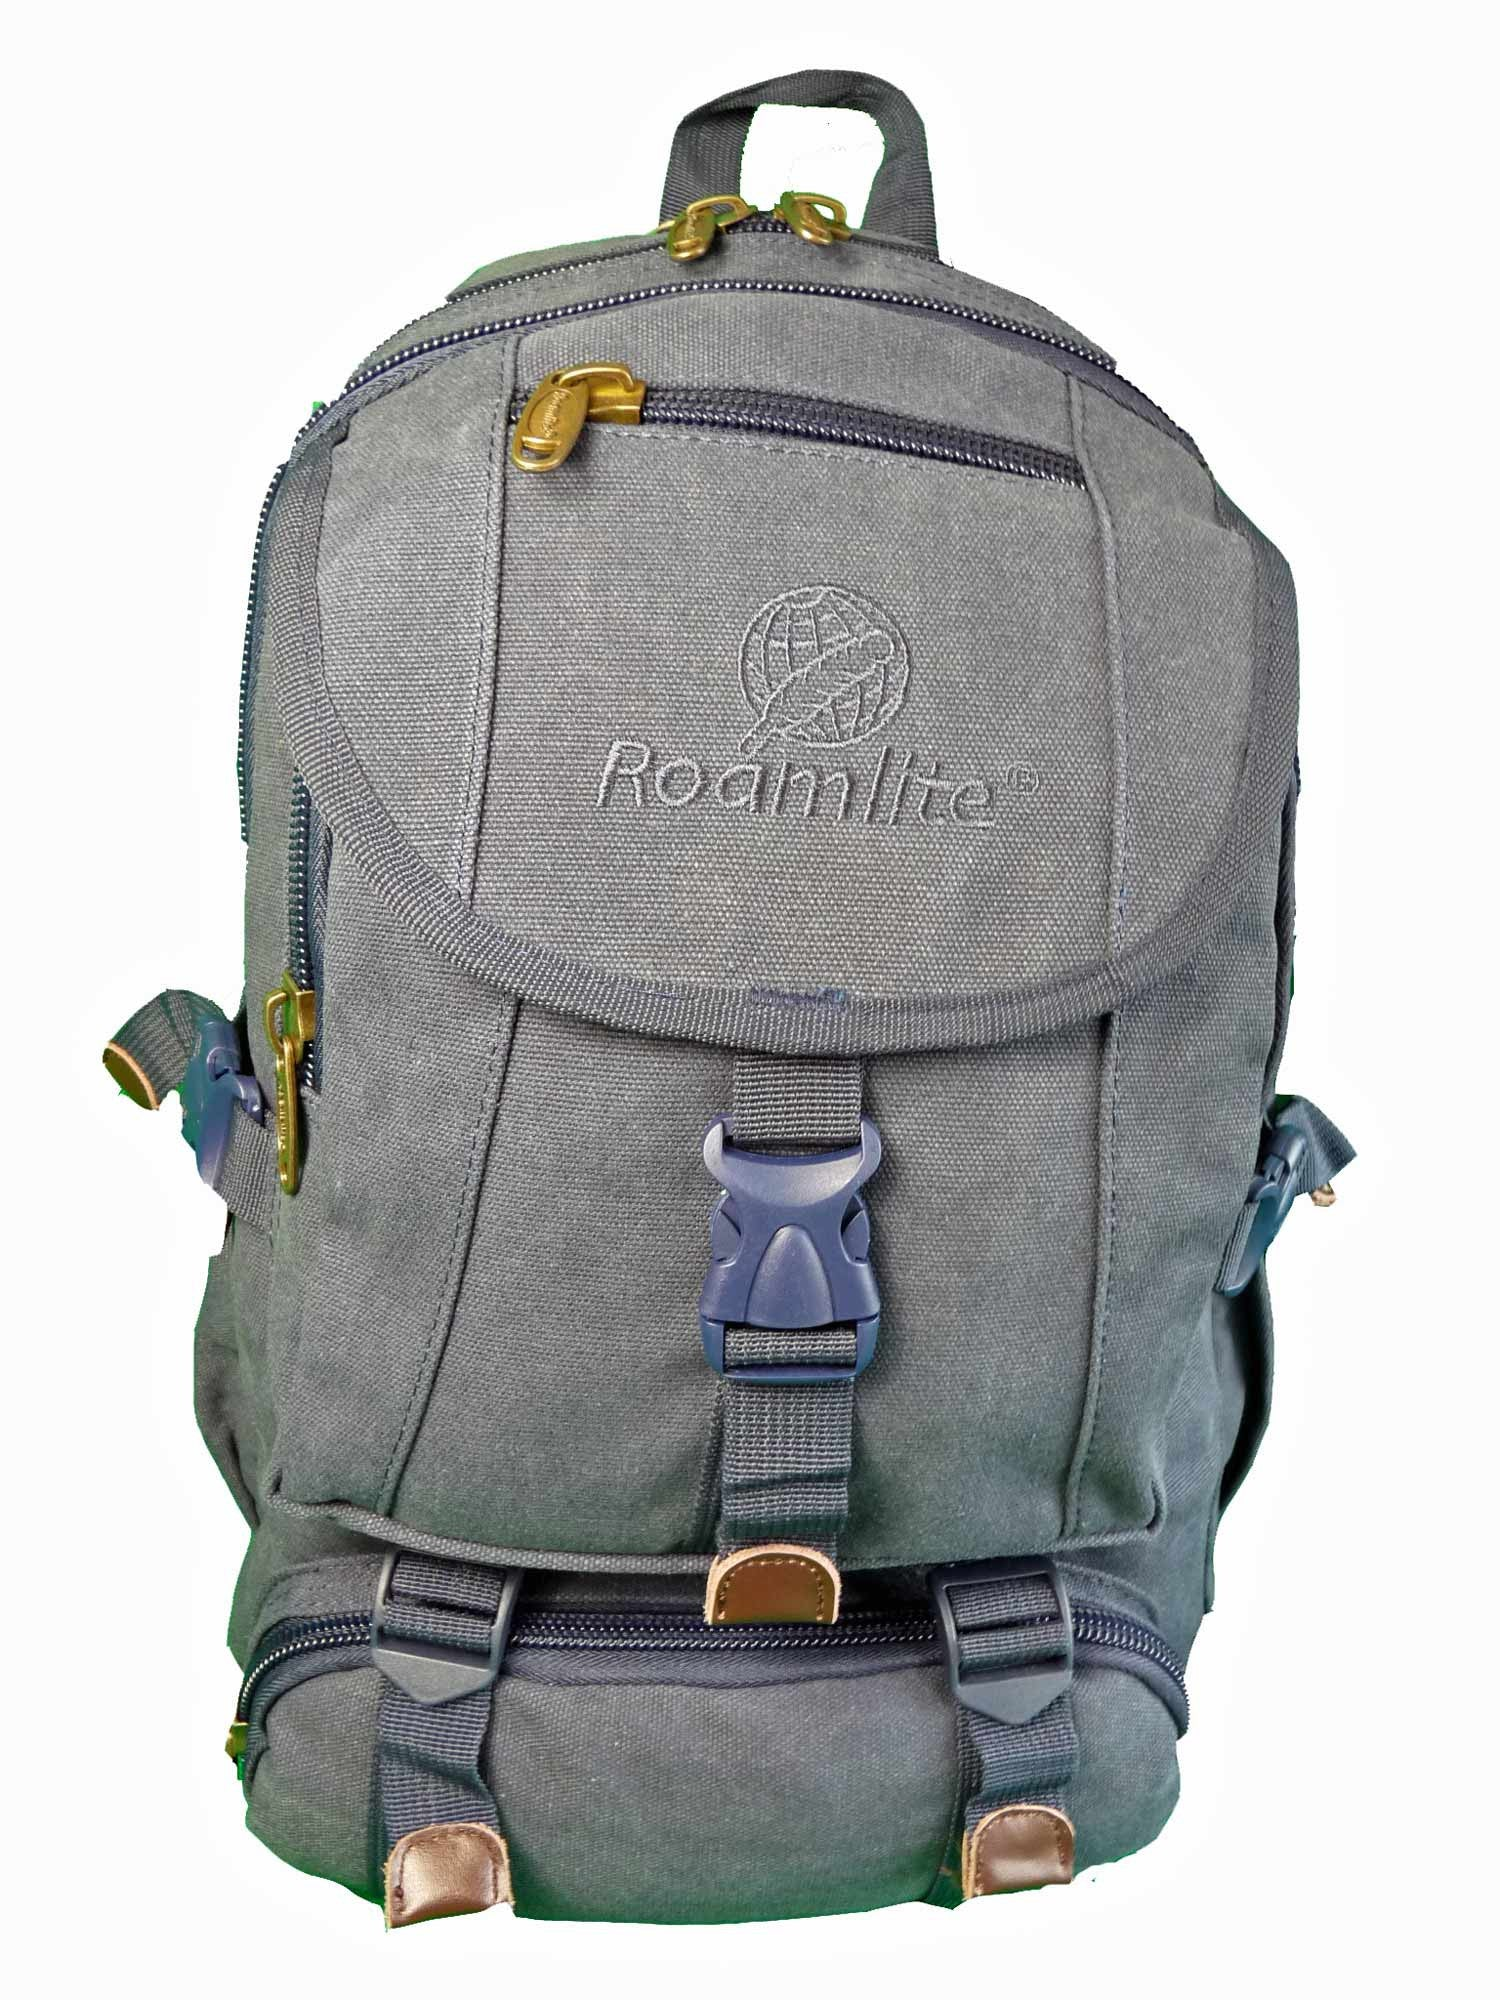 MacBook Air Backpack Rucksack Bag RL25N front view